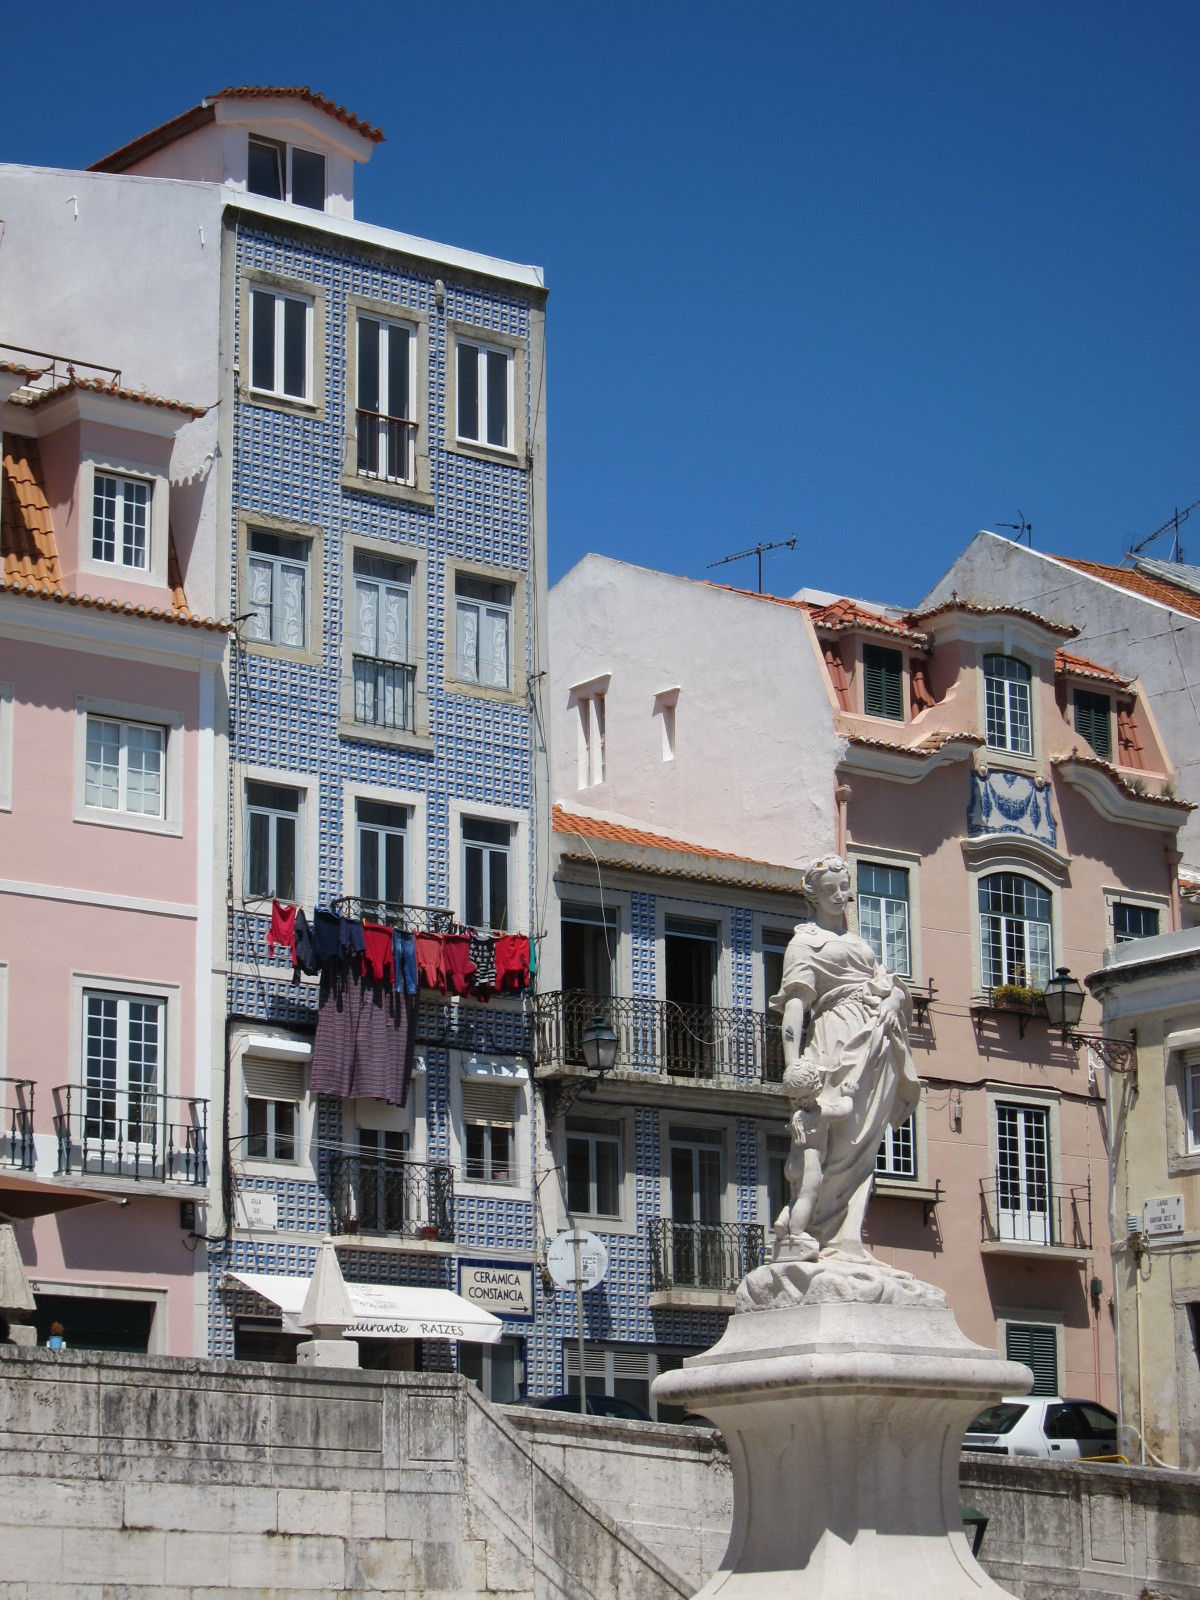 The Tiled Azulejo Lisbon  Buildings Pink and Blue